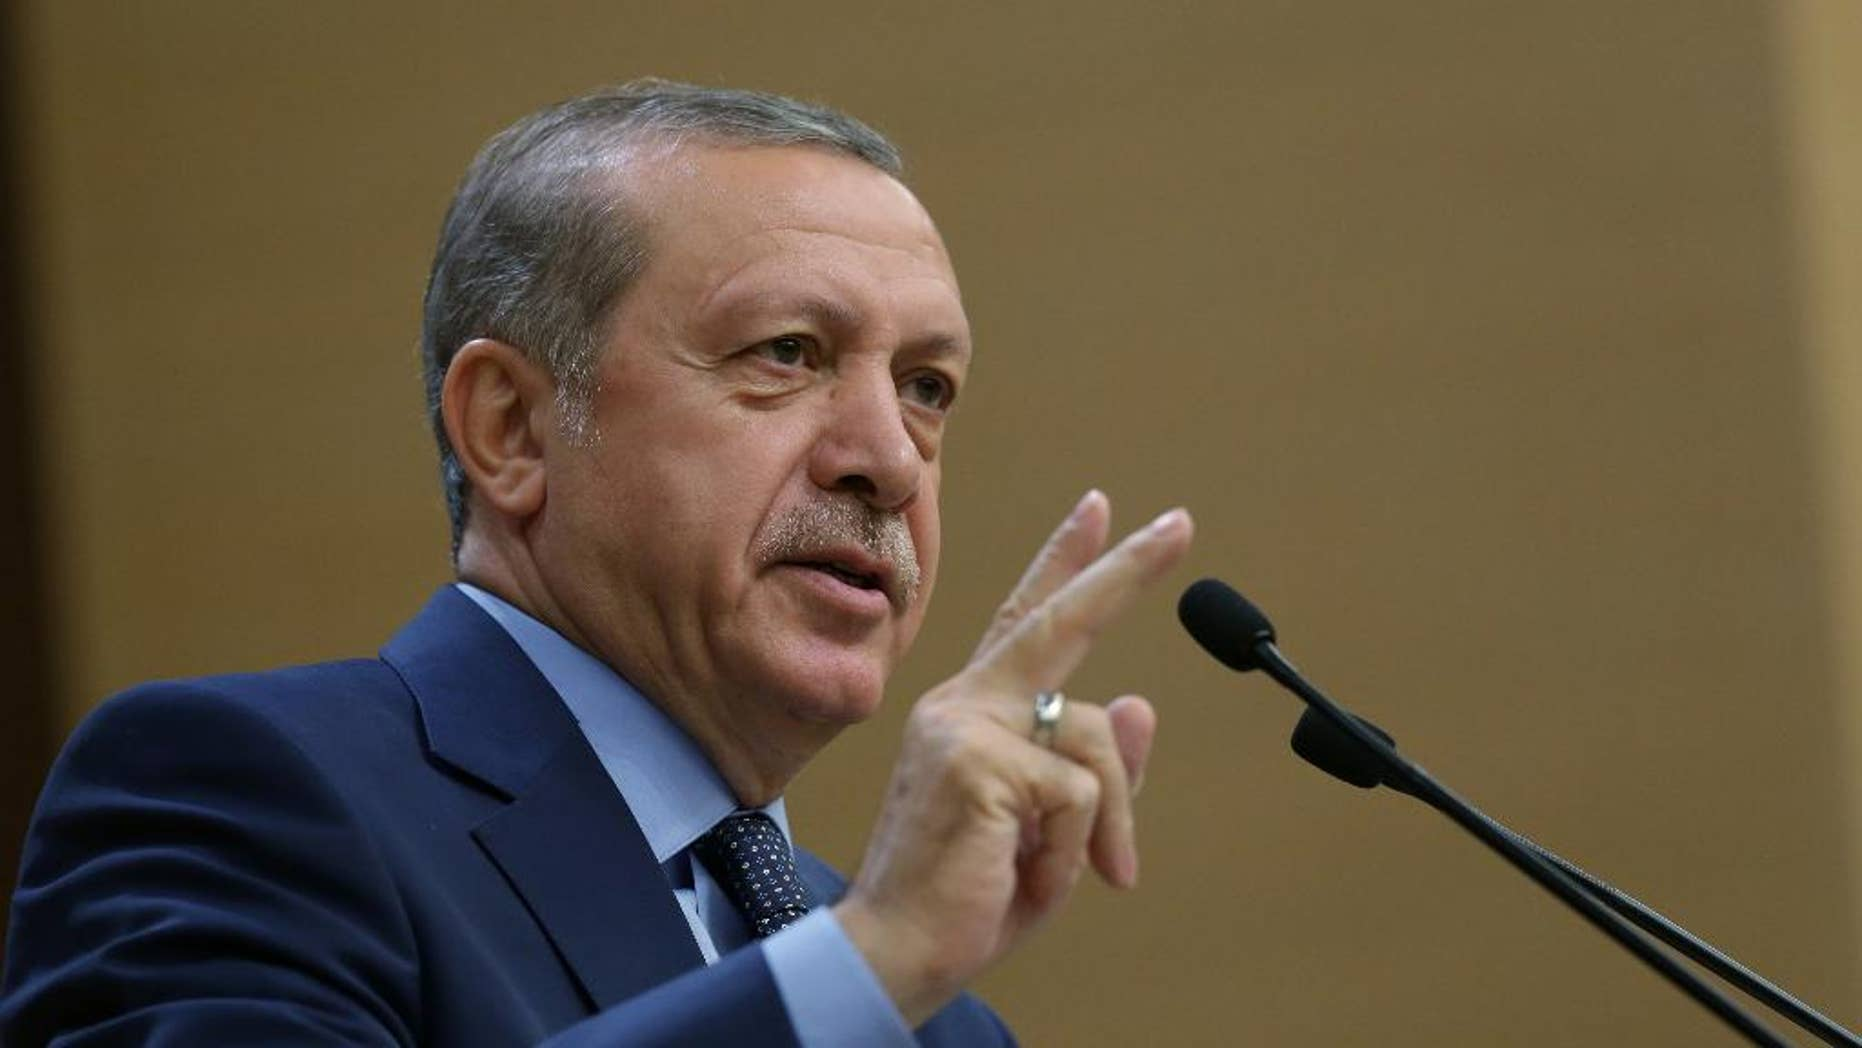 """Turkey's President Recep Tayyip Erdogan addresses a group of local administrators in Ankara, Turkey, Thursday, Sept. 29, 2016. Erdogan hinted on Thursday that the three-month state of emergency declared following the failed July 15 coup could be extended to over a year. Erdogan dismissed criticism over plans for Turkey to prolong the state of emergency, saying no one should determine a """"calendar or roadmap"""" for Turkey. (Murat Cetinmuhurdar, Prime Ministry Press Service, Pool via AP Photo)"""